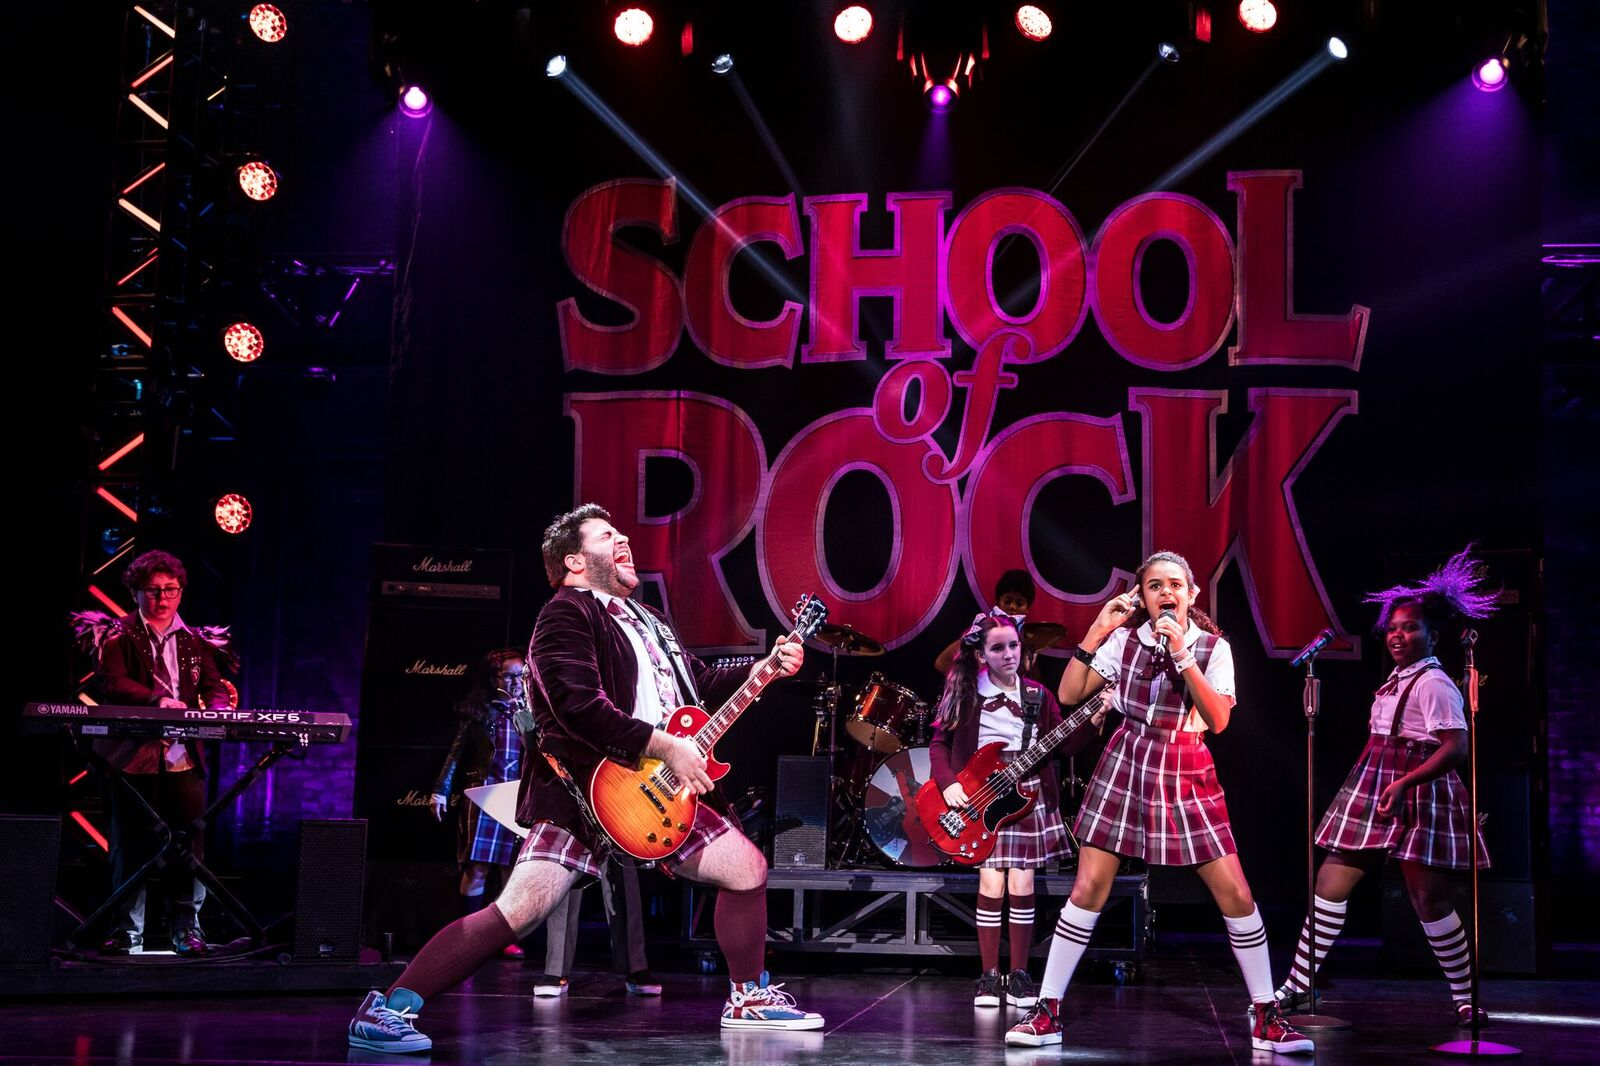 Thumbnail image for Get Ready to Rock! SCHOOL OF ROCK is coming to Bass Hall Aug. 28-Sept. 2 blog post